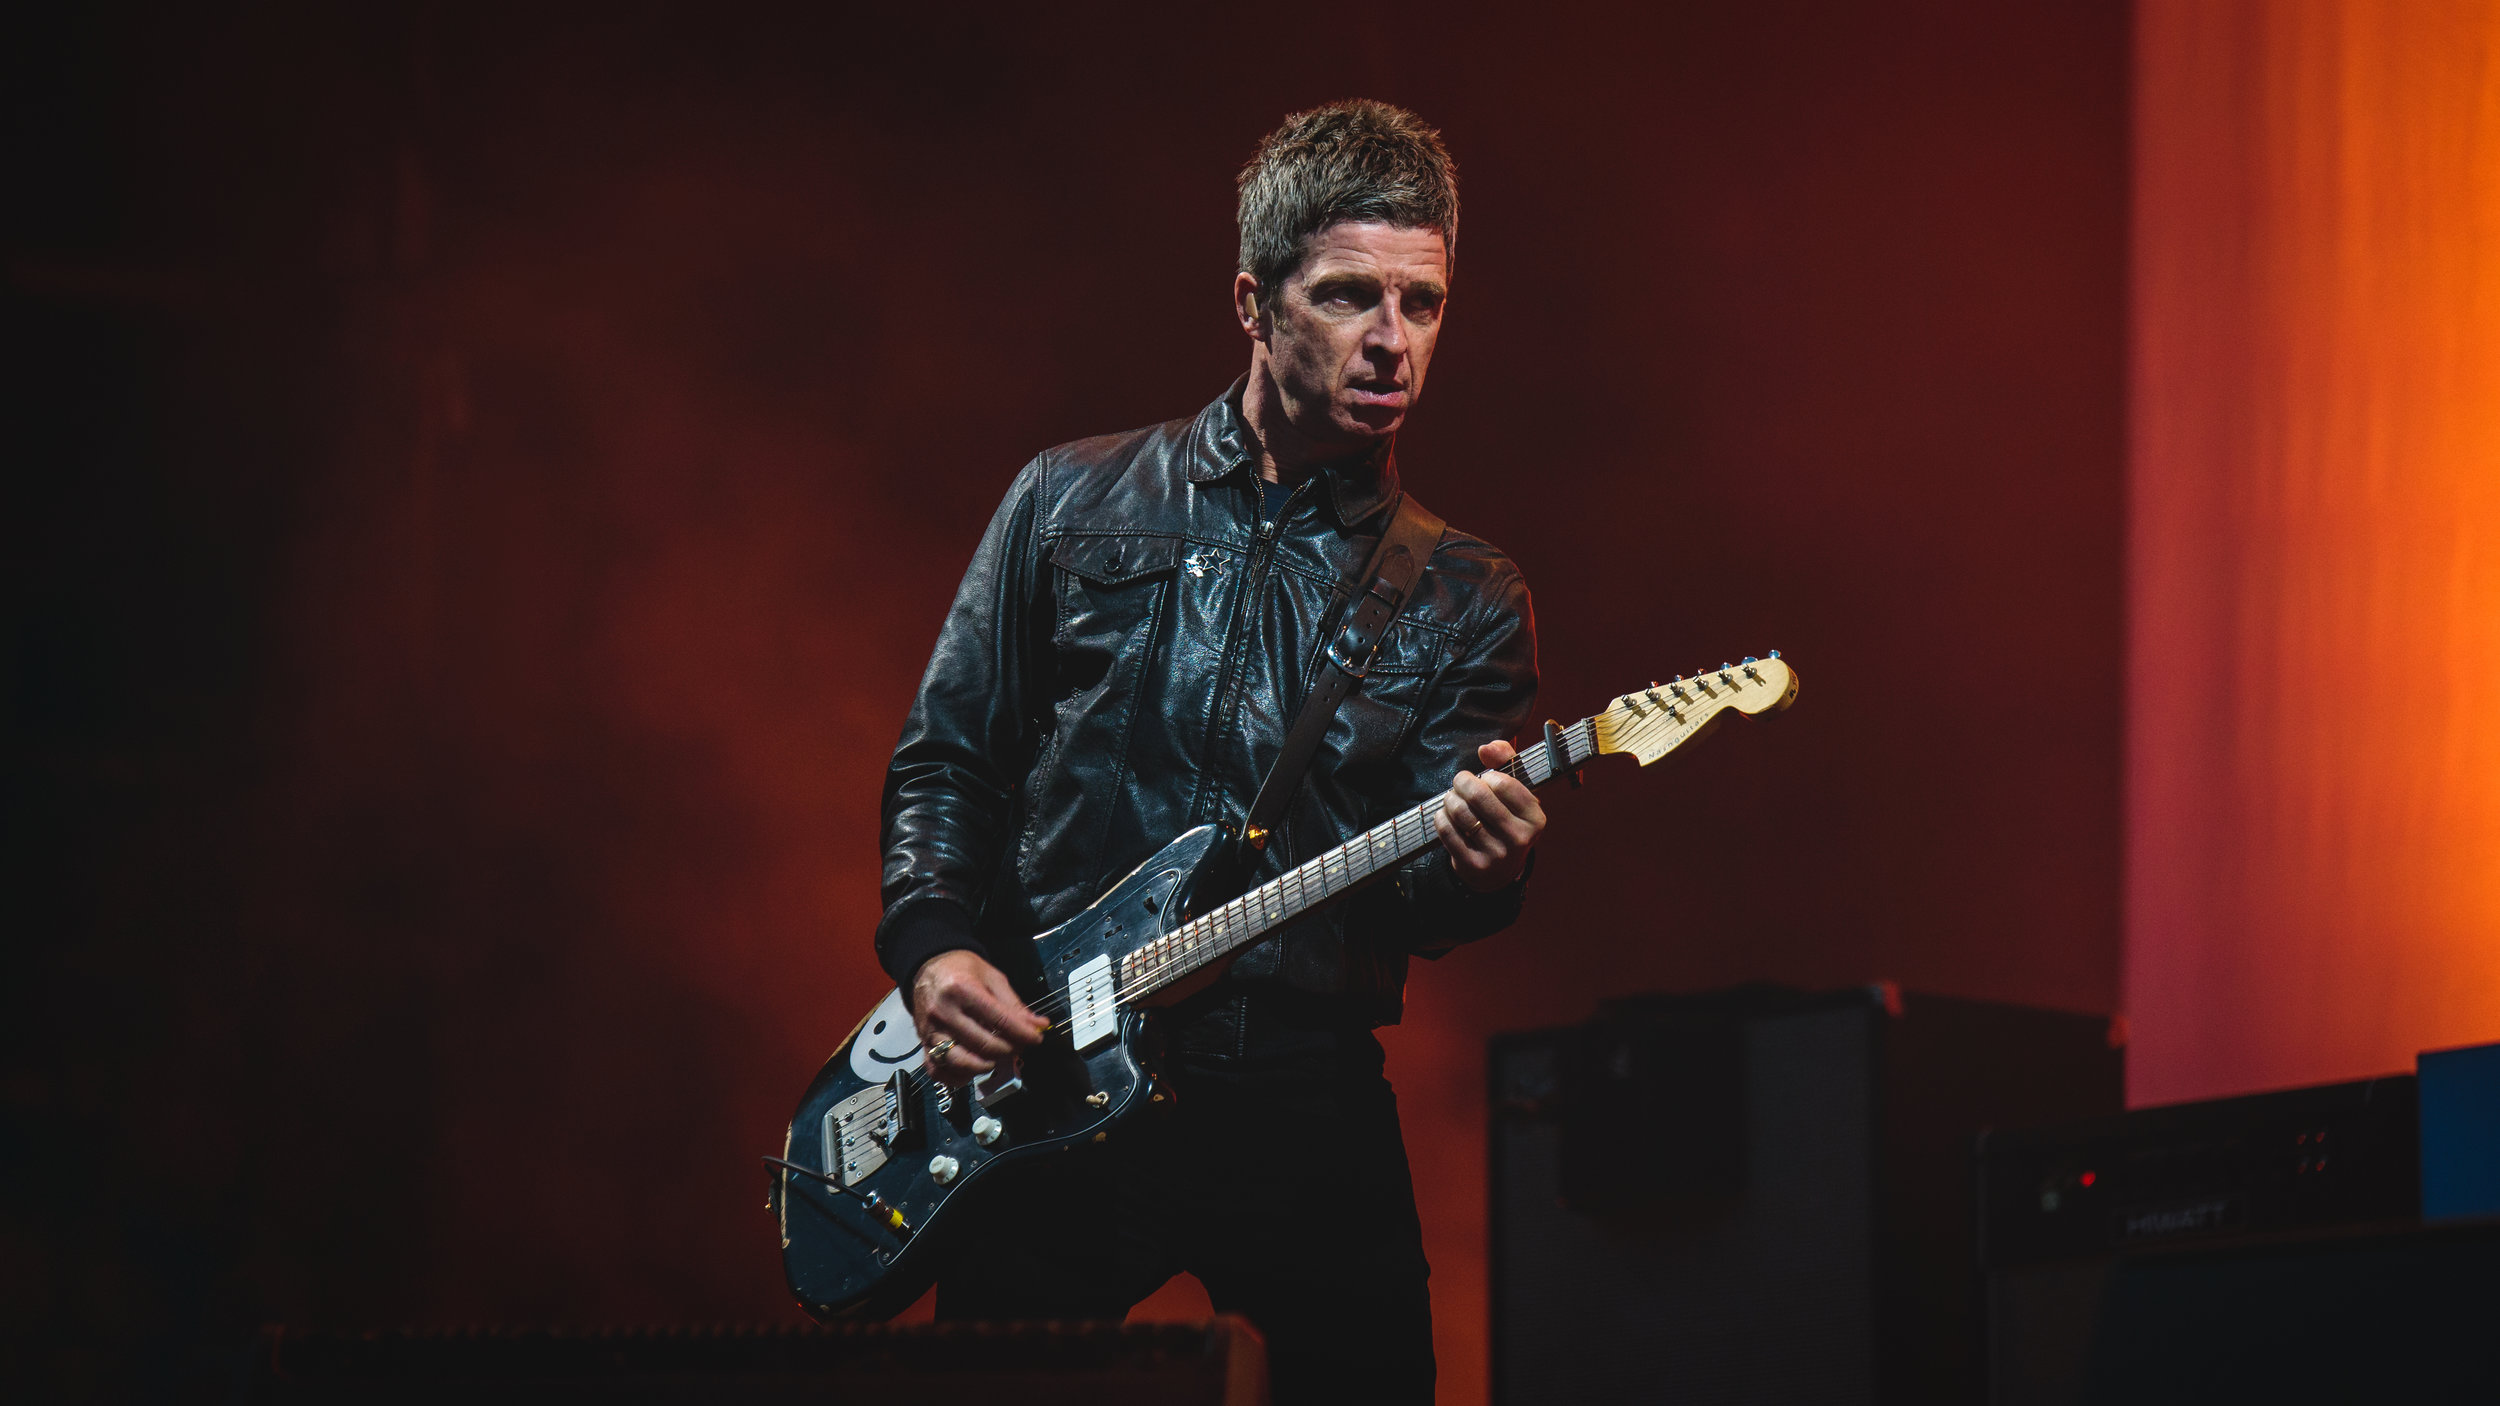 Noel Gallagher's High Flying Birds headlined Saturday evening on the main stage.